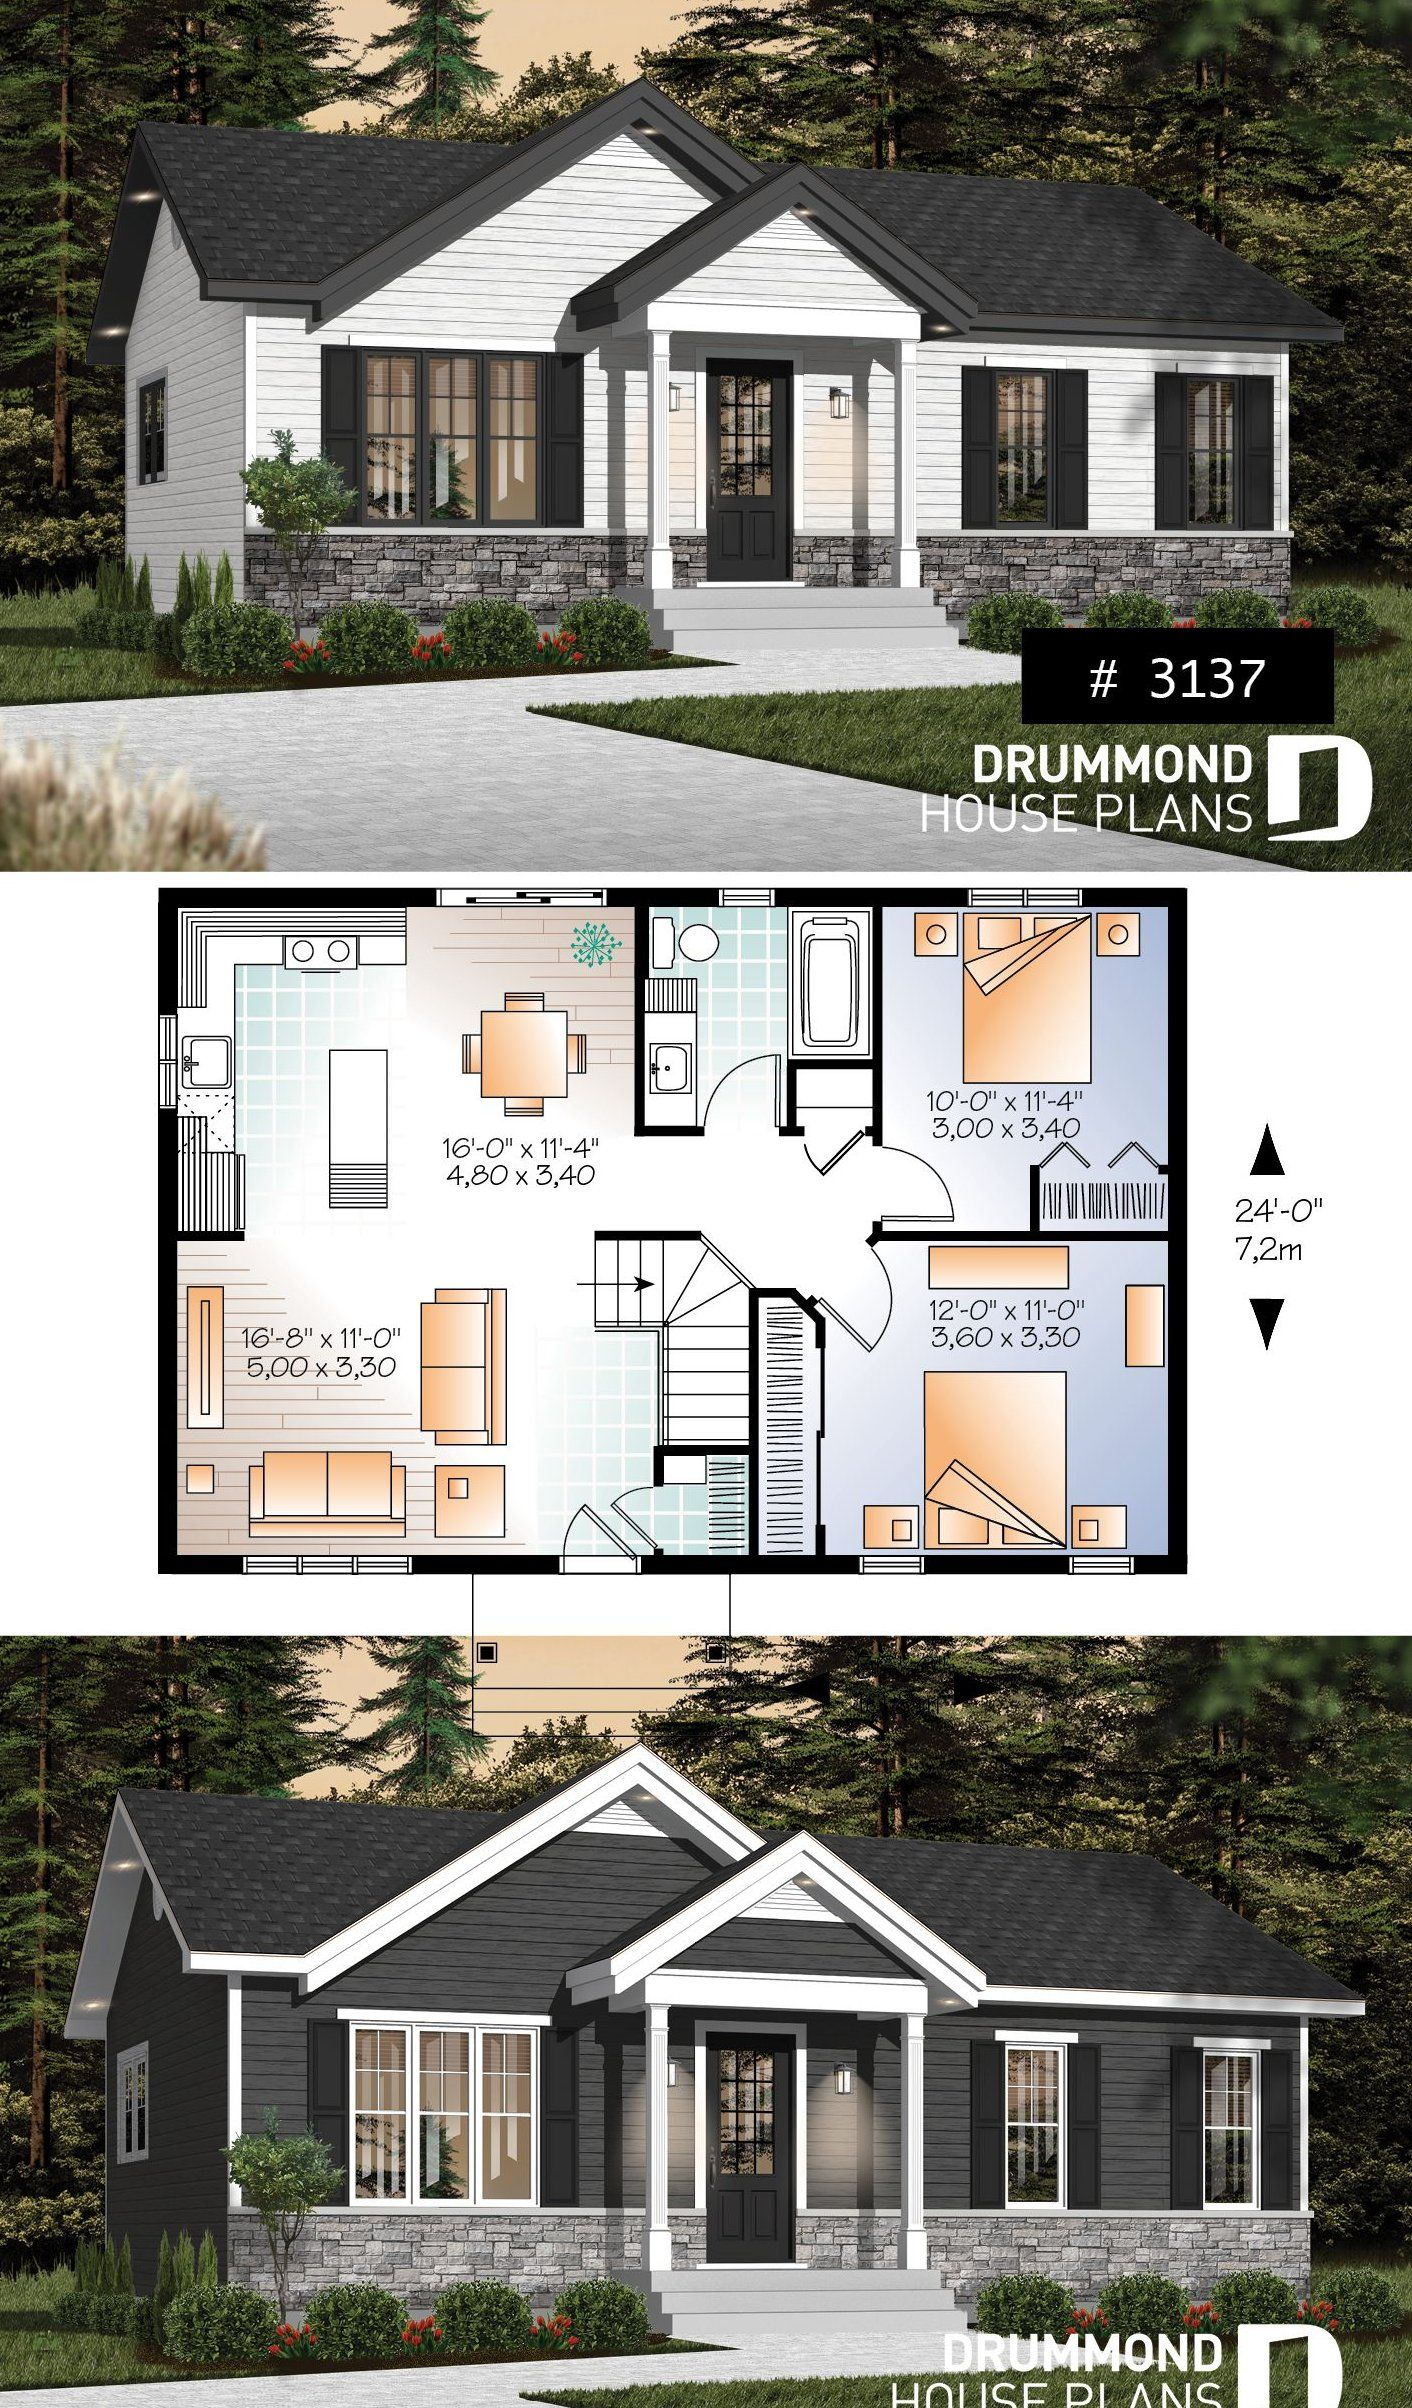 Small And Affordable Bungalow Smallhome In 2020 Small House Design Exterior Small House Design Plans Small House Design